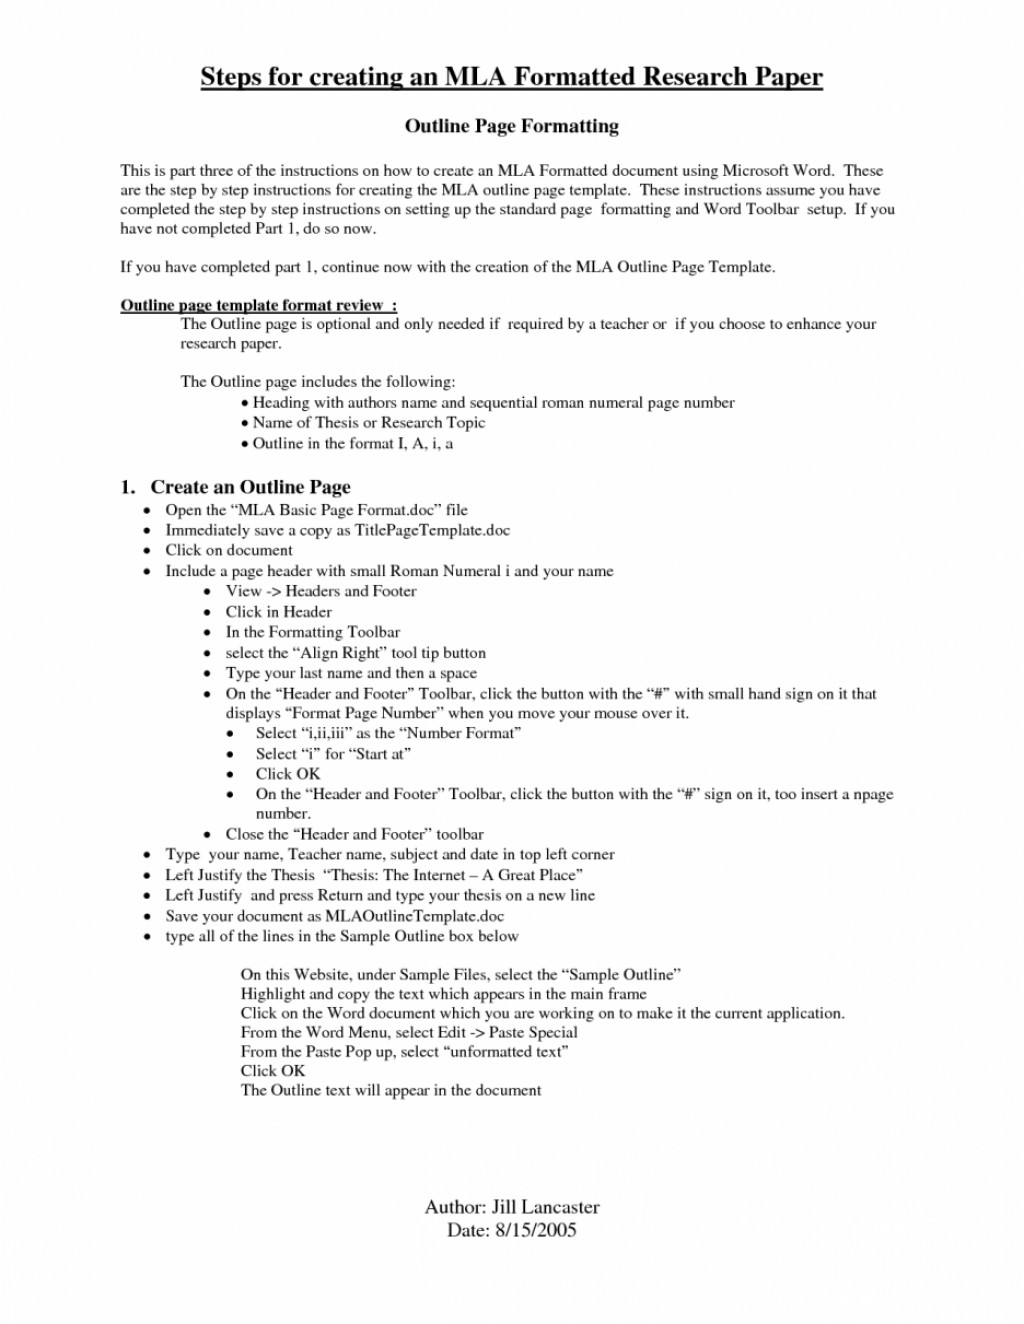 025 Essay Format Mla Researchs Outline Template Heading Title Page College Without Style Paragraph Example Sample 936x1211 Stunning Research Paper Introduction Large